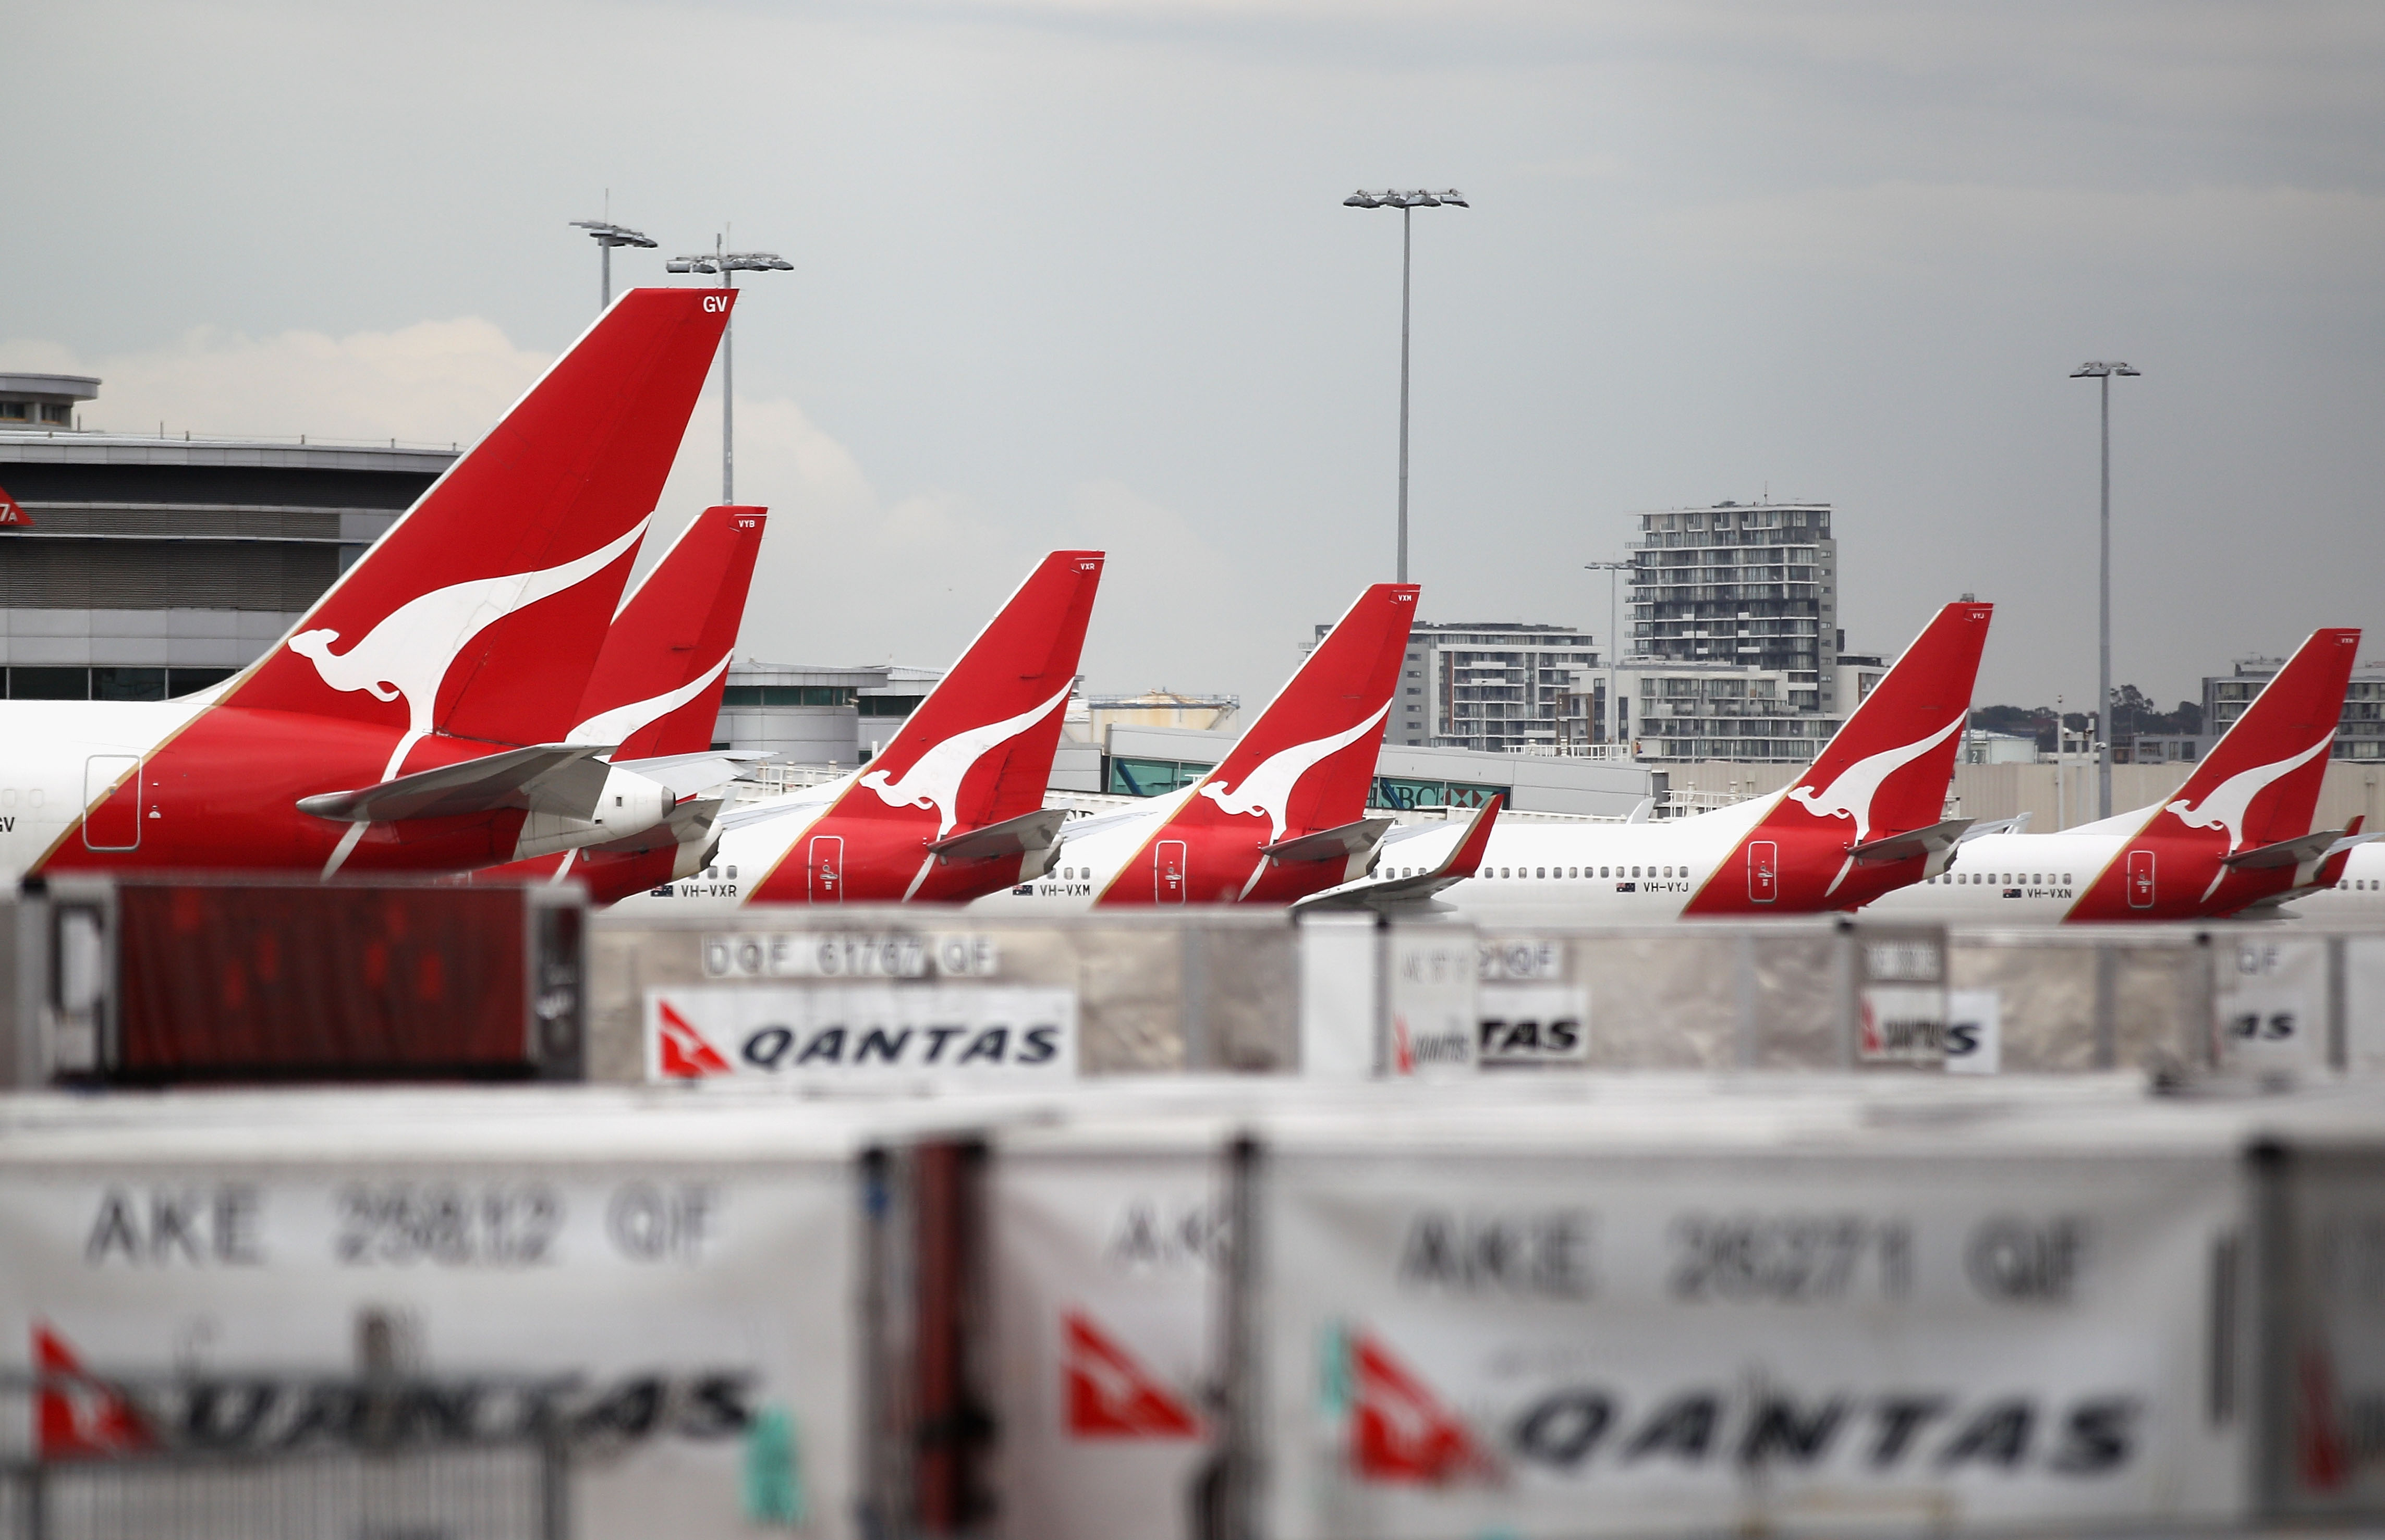 Qantas jets are seen at the Qantas Domestic Terminal on October 30, 2011 in Sydney, Australia.